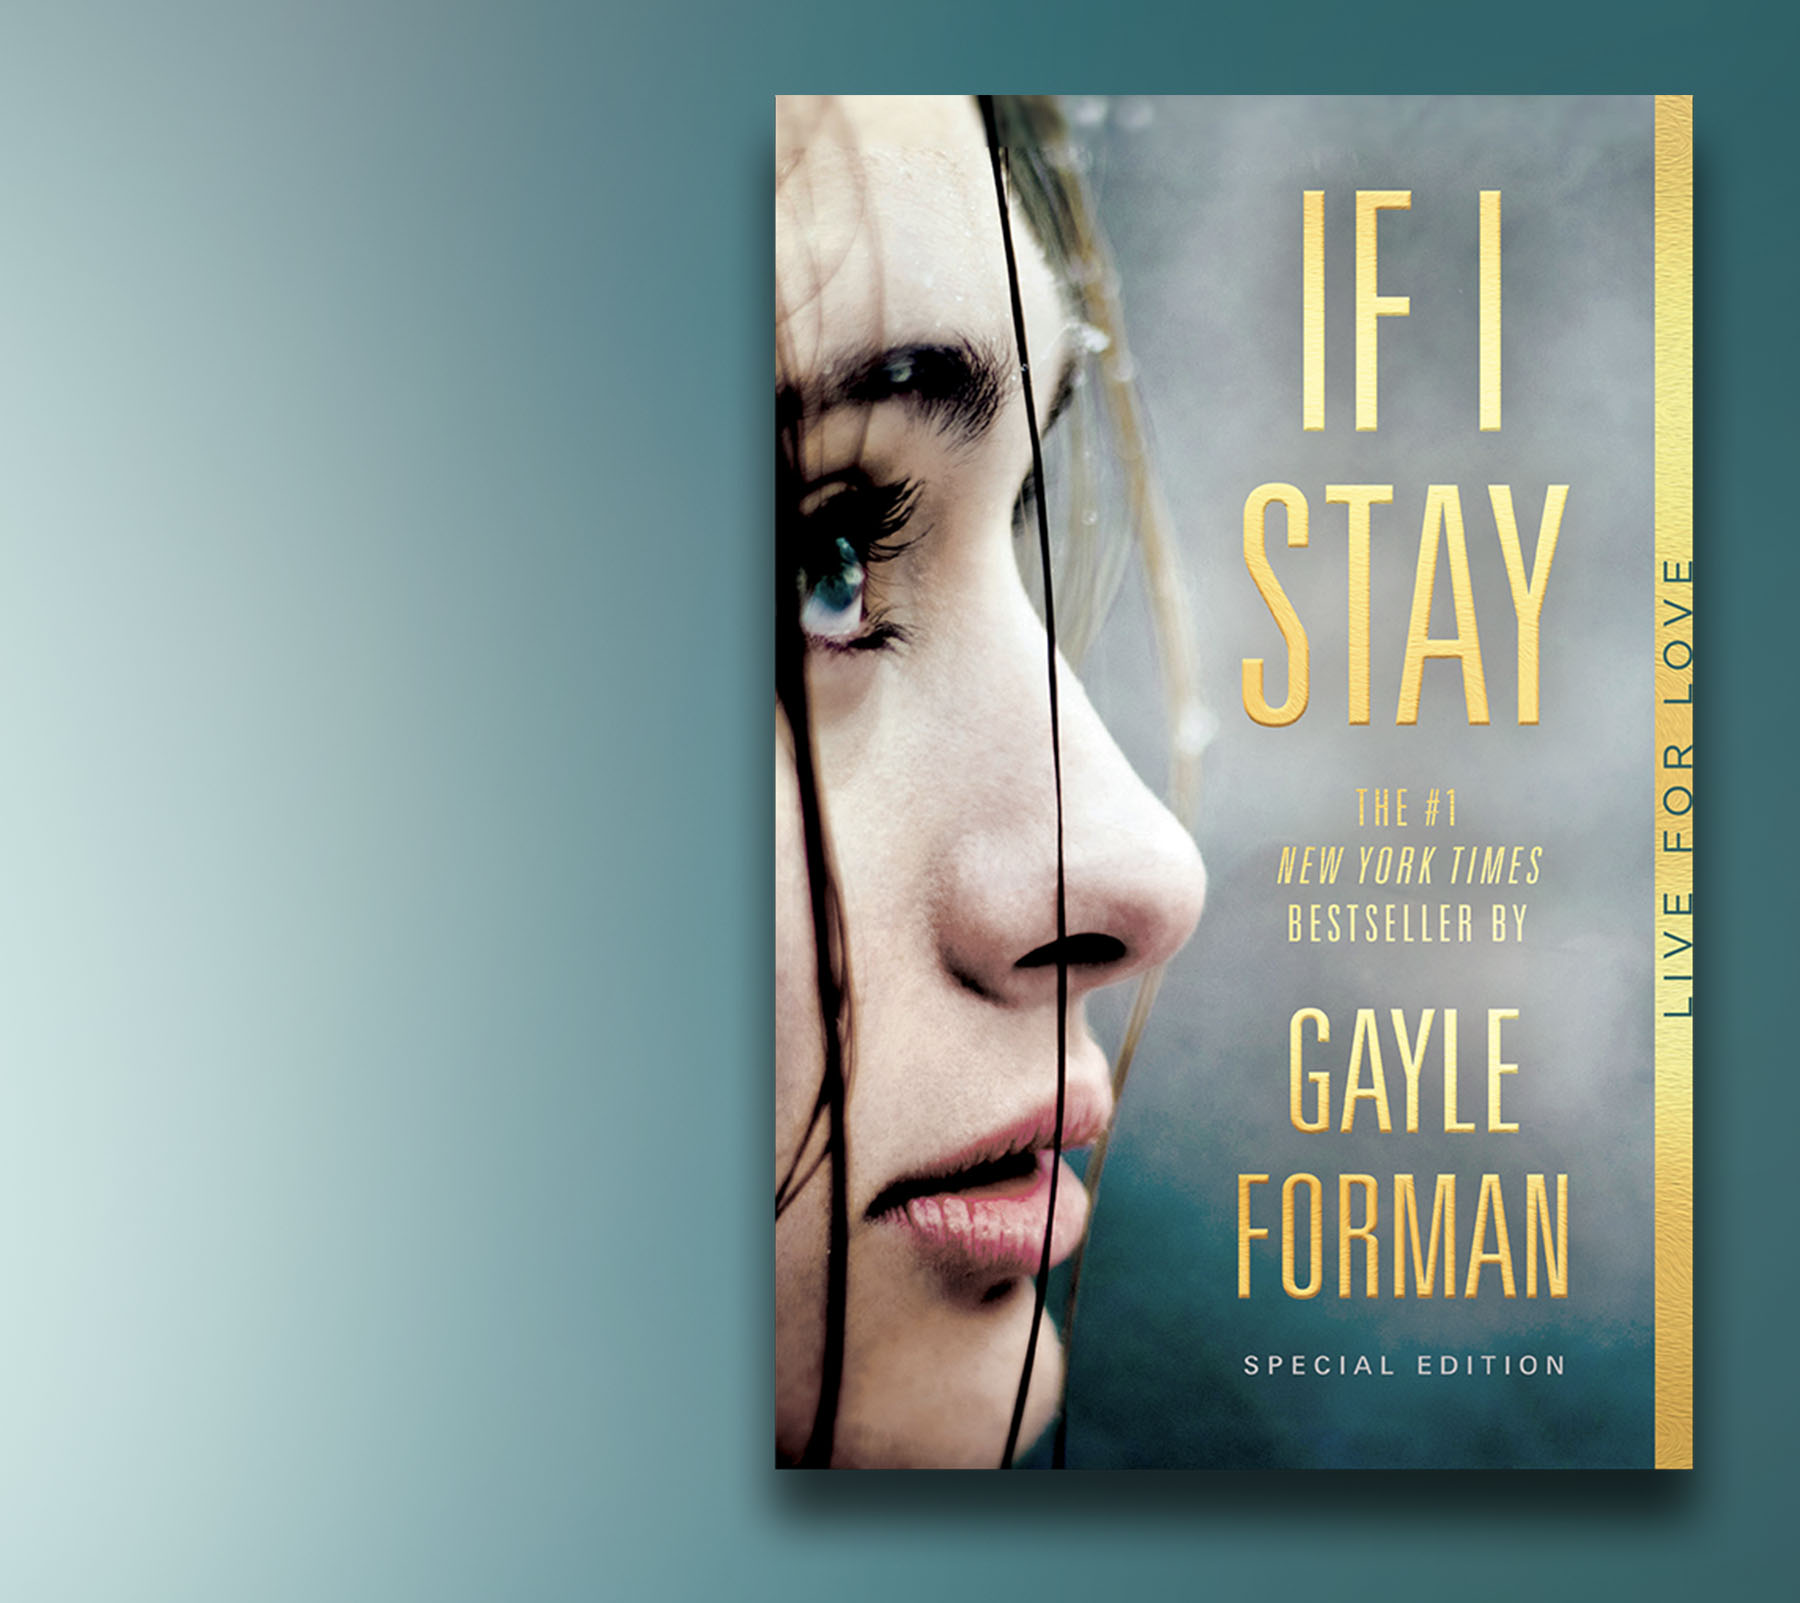 If I Stay Special Edition - A special anniversary edition of Gayle Forman's breakout bestseller, If I Stay, in a brand new look and with an additional chapter to Mia's story!Everything can change in an instant. For Mia, the day started like any other, surrounded by a loving family, an adoring boyfriend, and a bright future filled with music and infinite possibilities. What she never expected is the choice before her now. Caught between life and death, between a happy past and an uncertain future, Mia has to contemplate everything she holds dear and make a choice: to go or to stay.